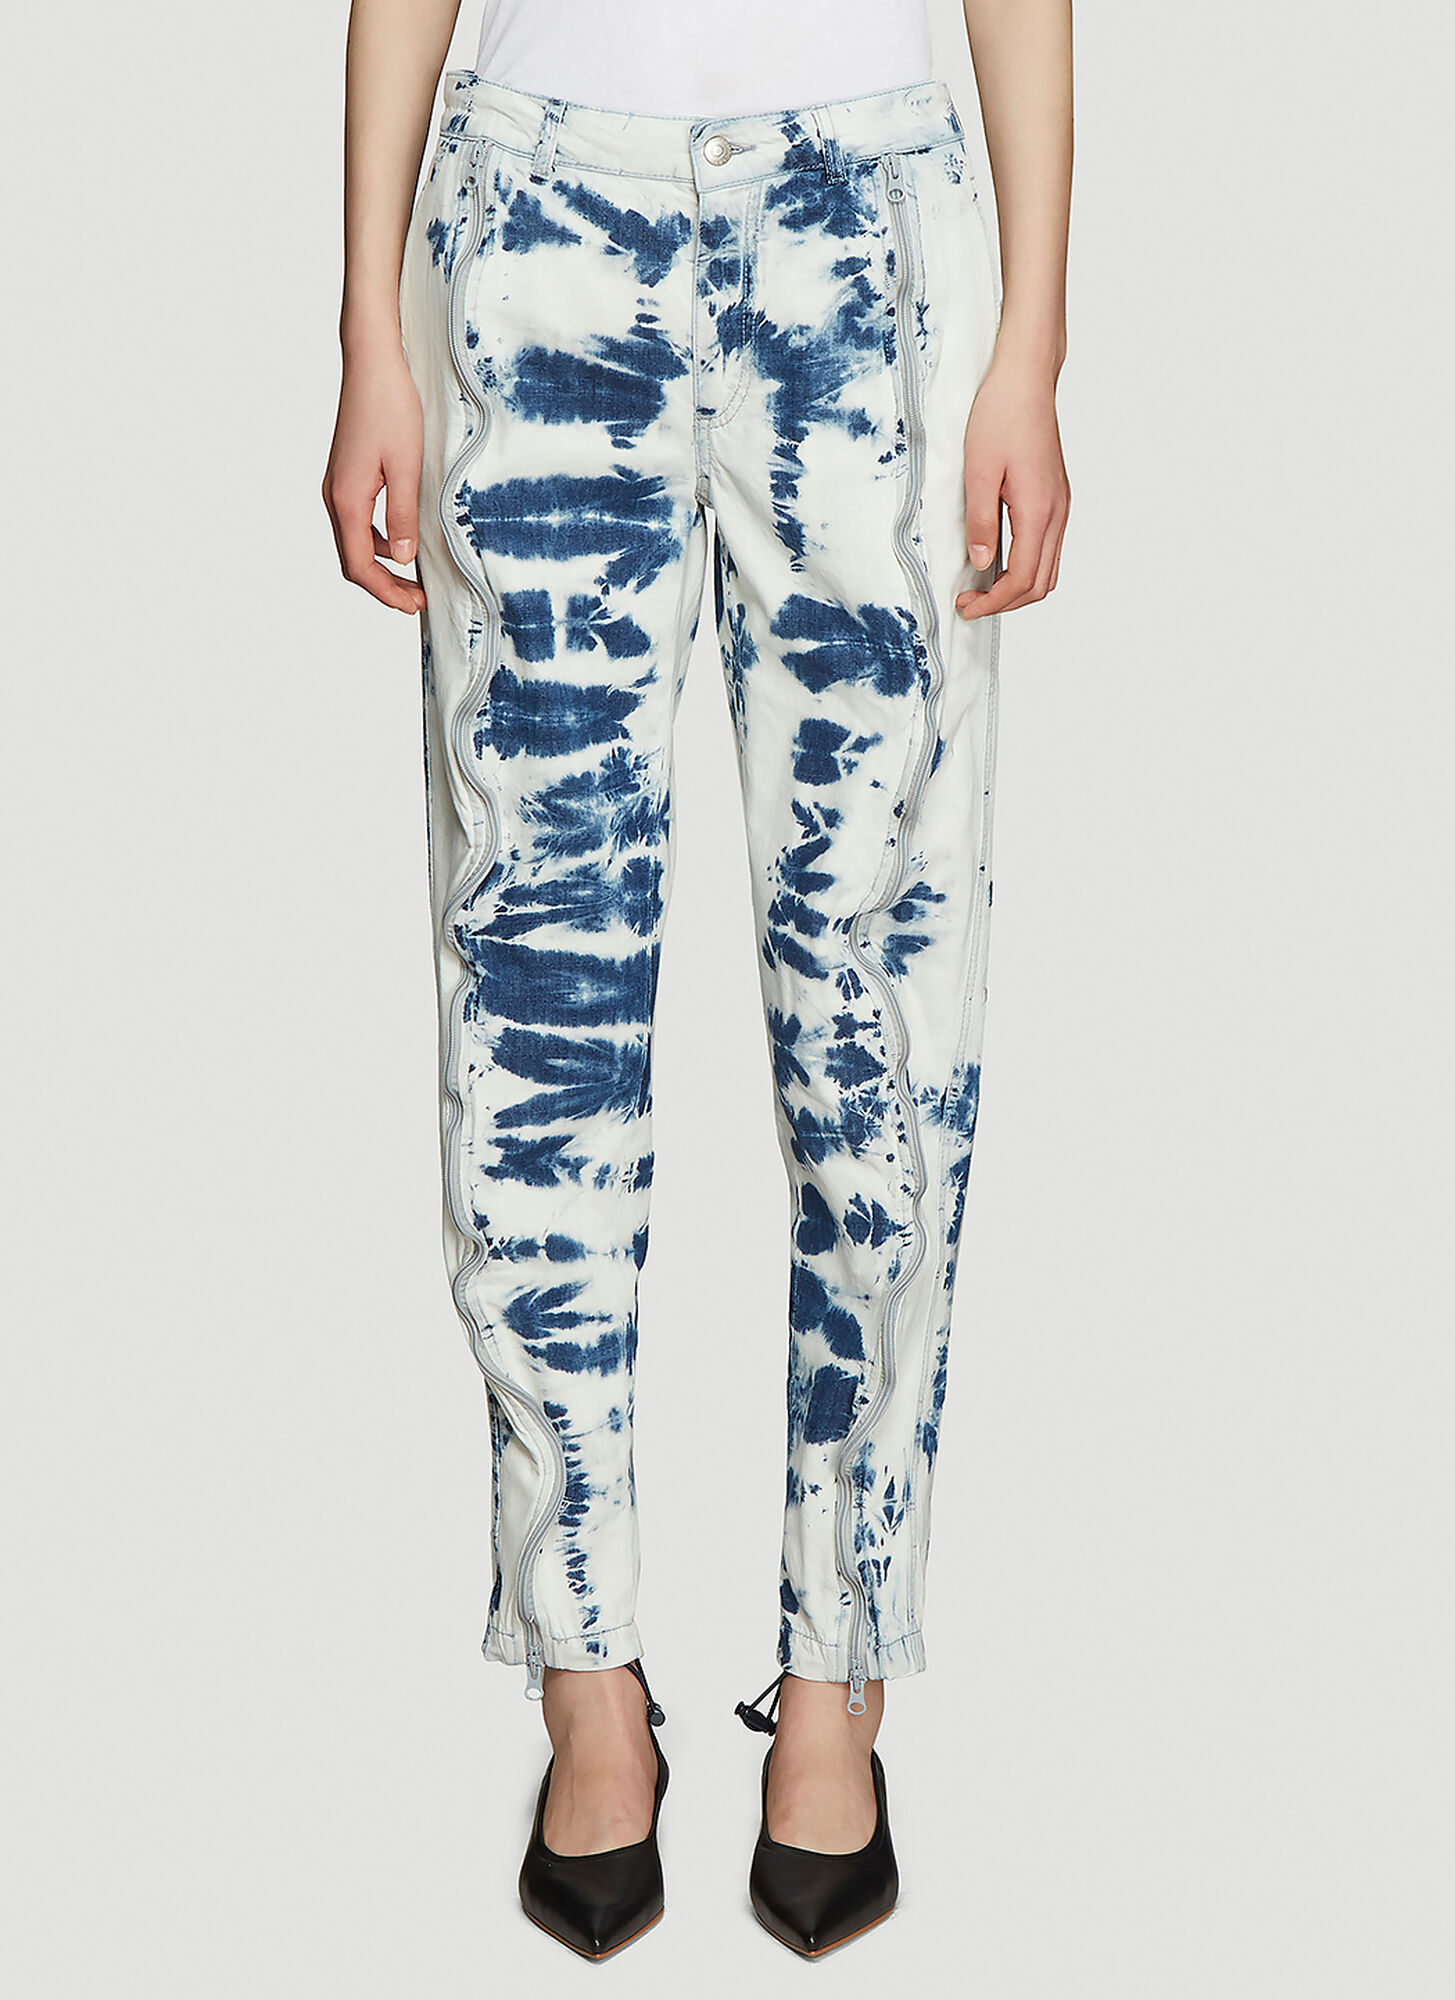 Stella McCartney Tie-Dyed Jeans in Blue